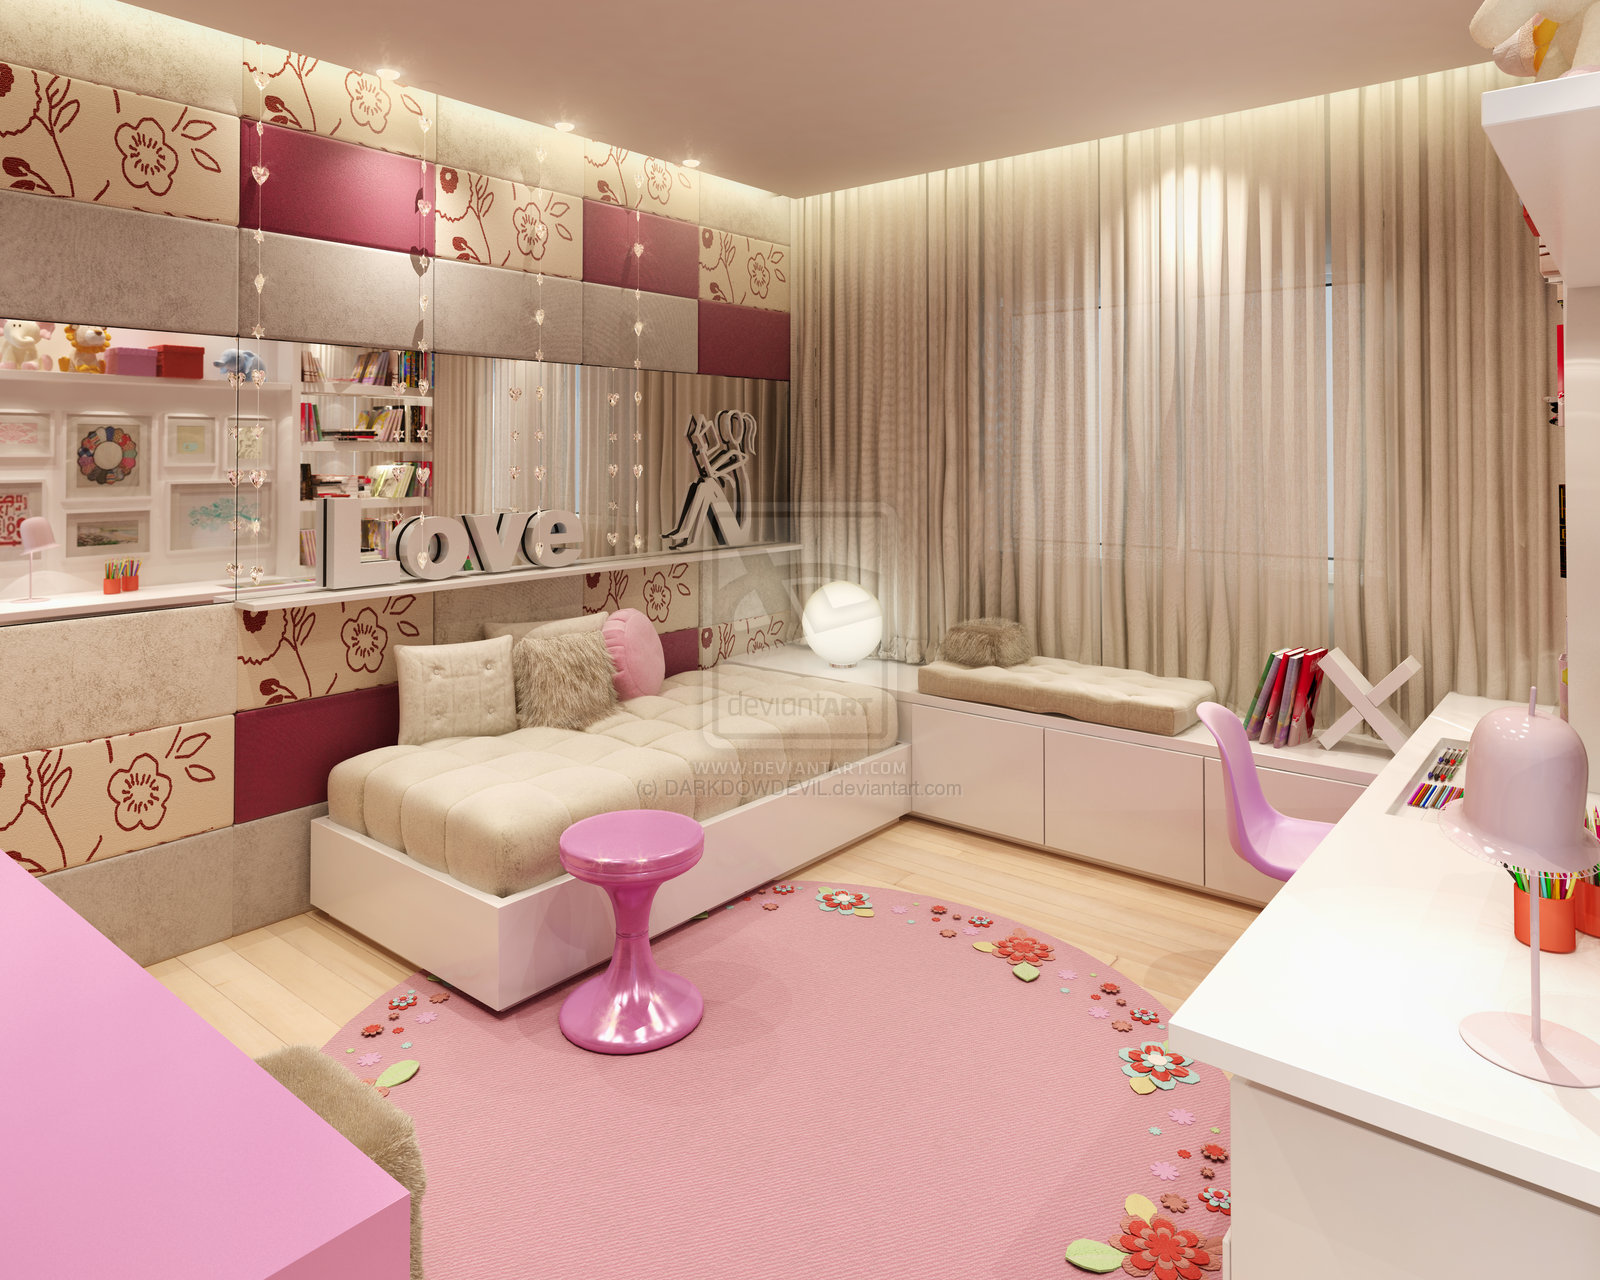 girly bedroom design ideas azee ForBedroom Designs Girly